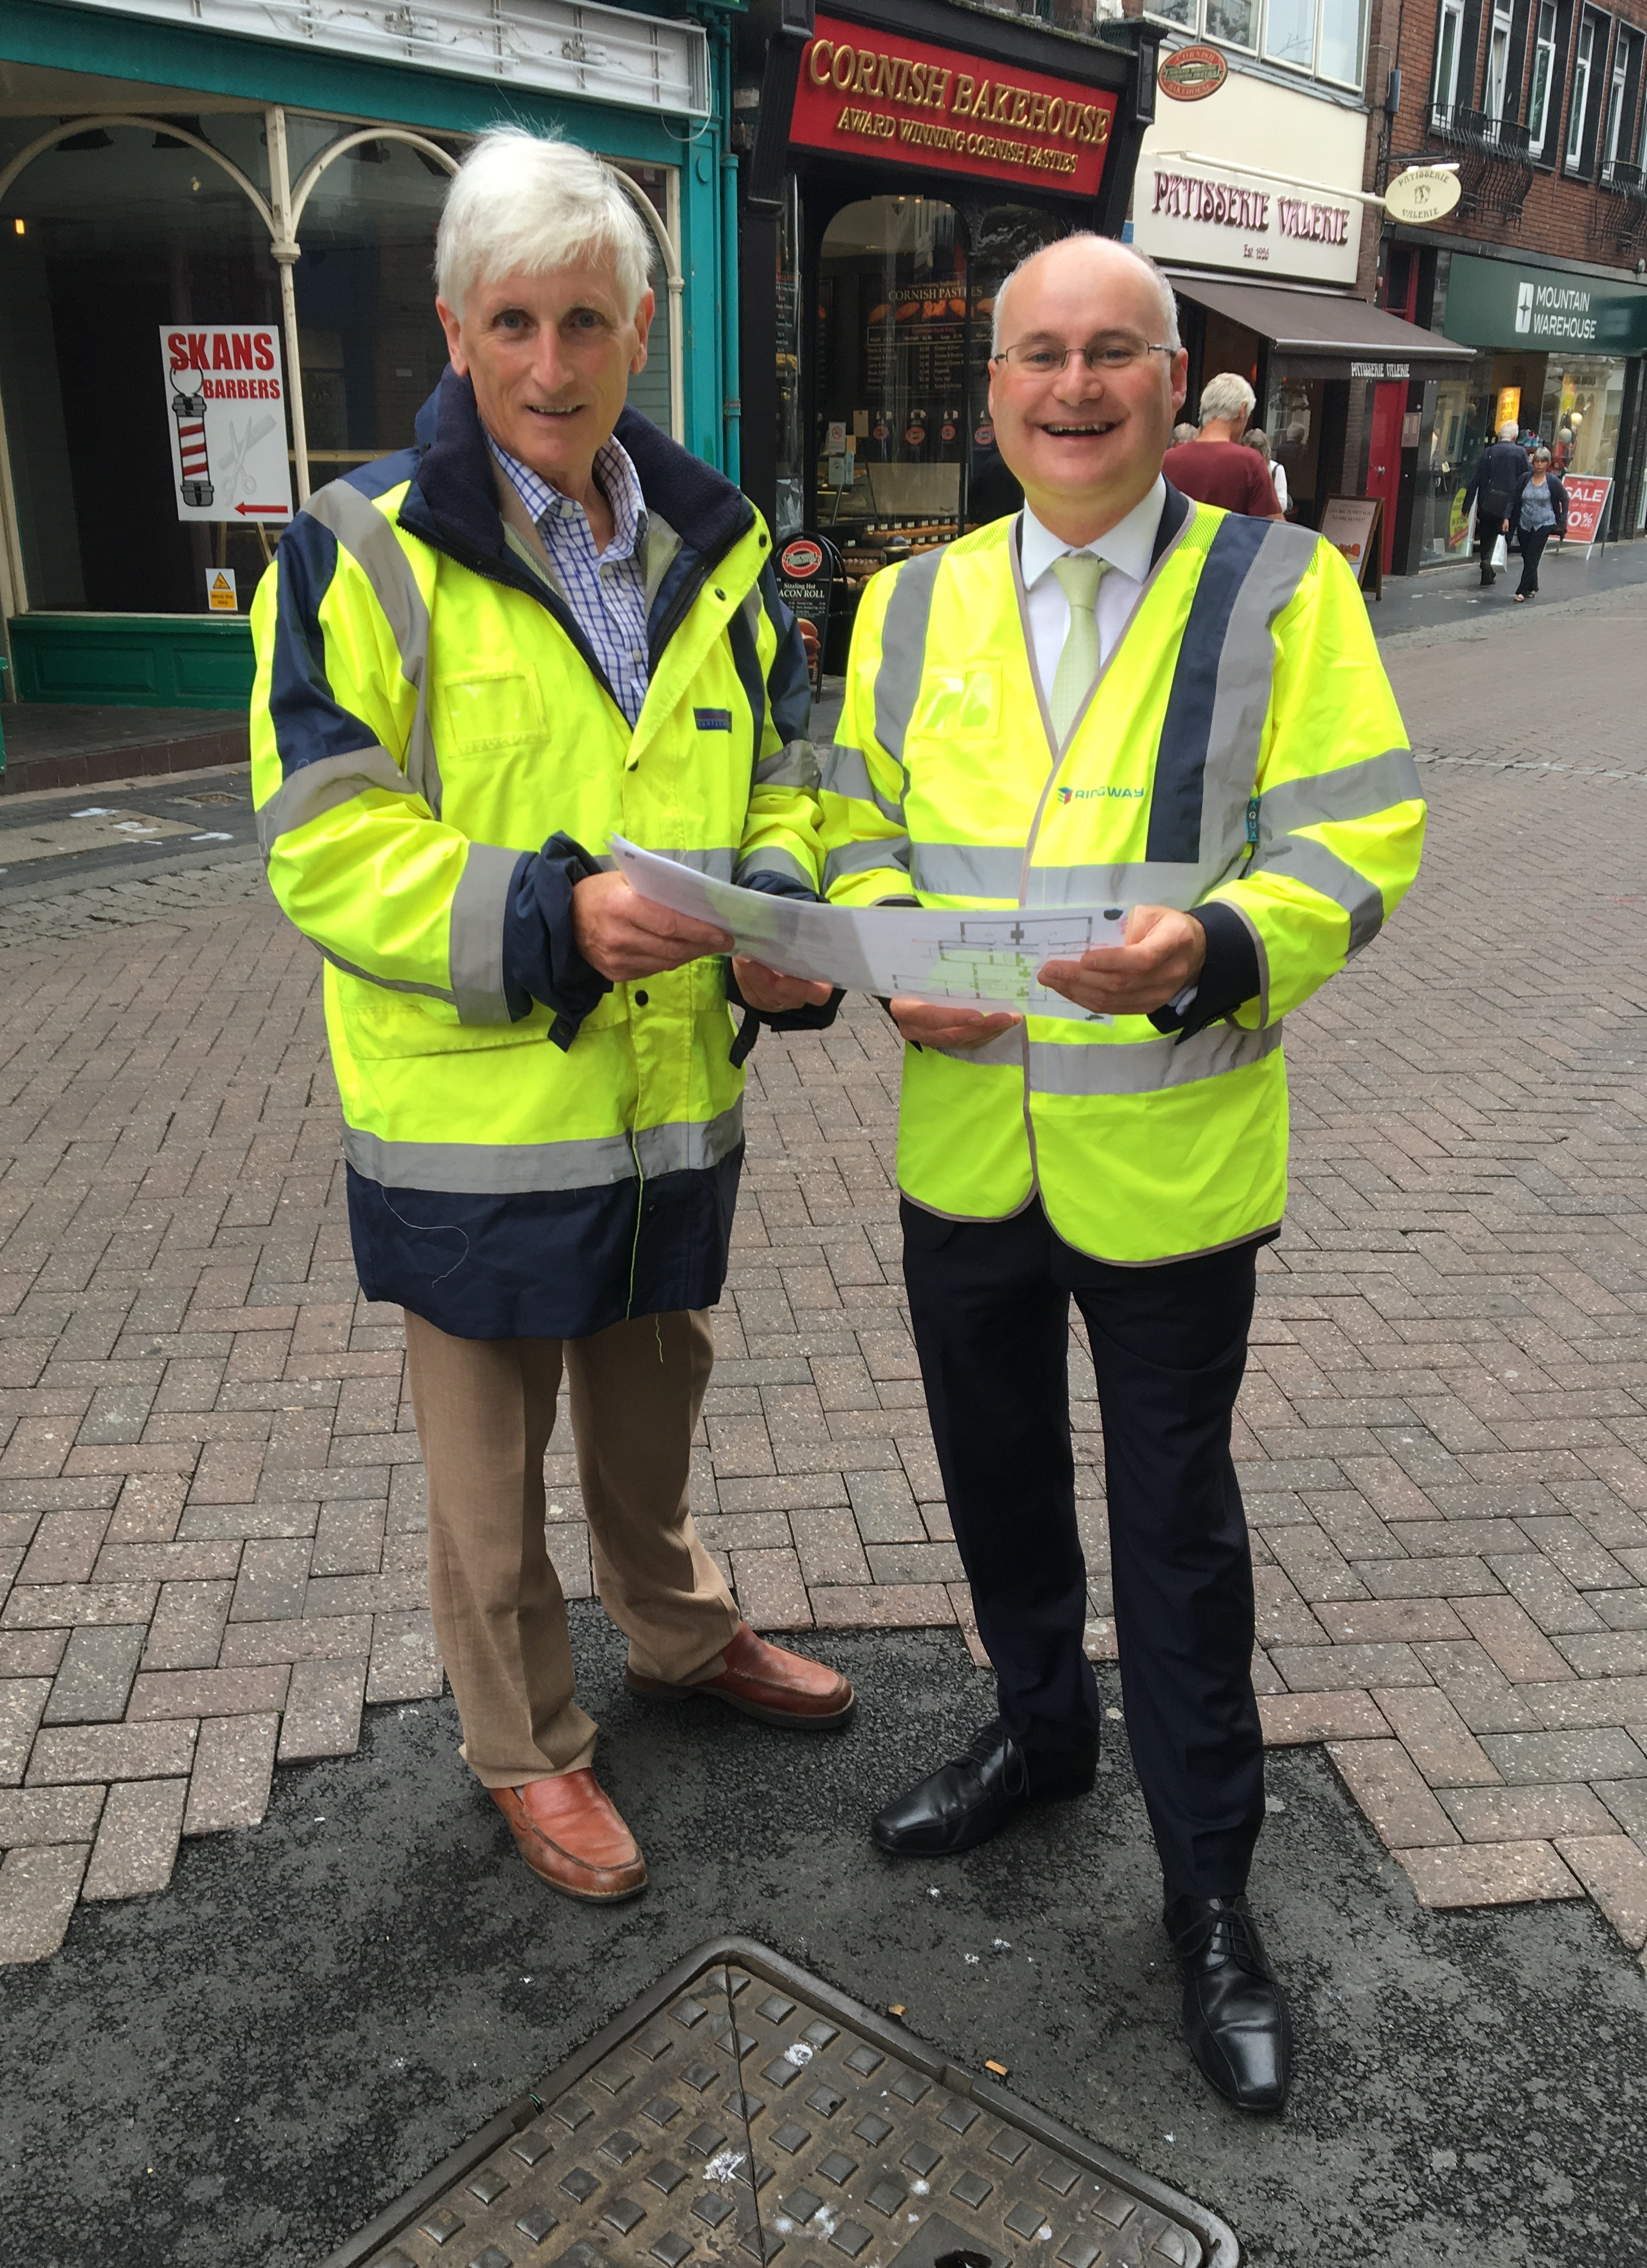 Councillor Ken Pollock and Councillor Simon Geraghty in Broadstreet